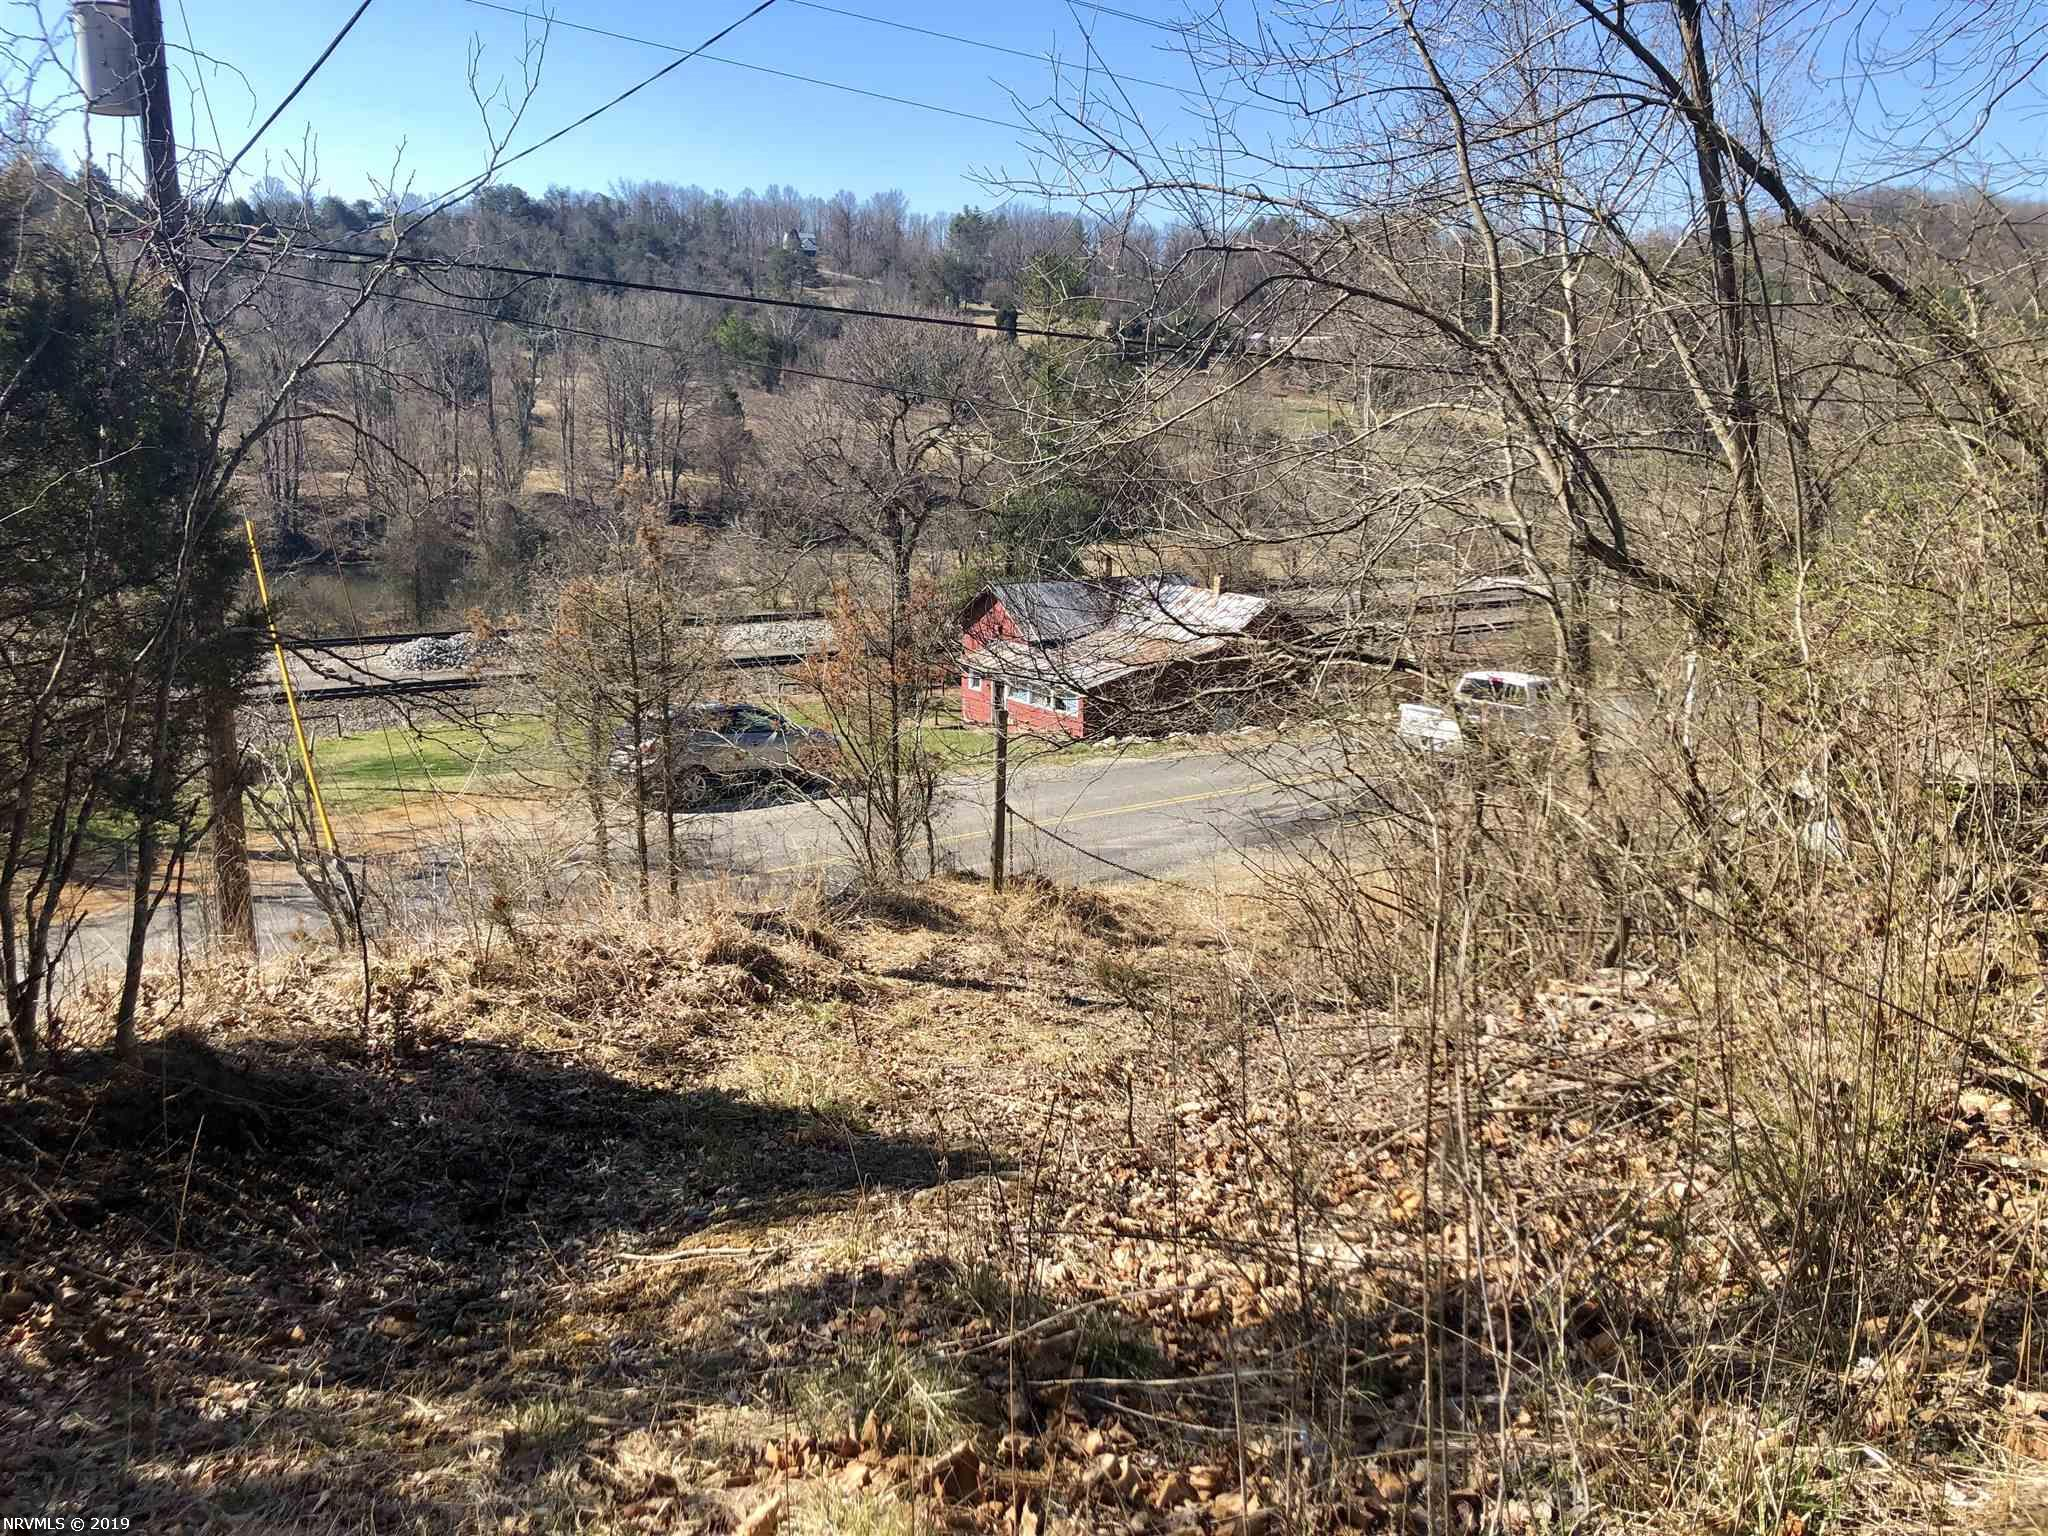 "Close to town with country setting. Great opportunity to purchase 10 acres of land conveniently located off Rt. 114 with amazing mountain views. fronts on paved, state maintained, Vicker Switch Rd. House conveys at ""no value""."